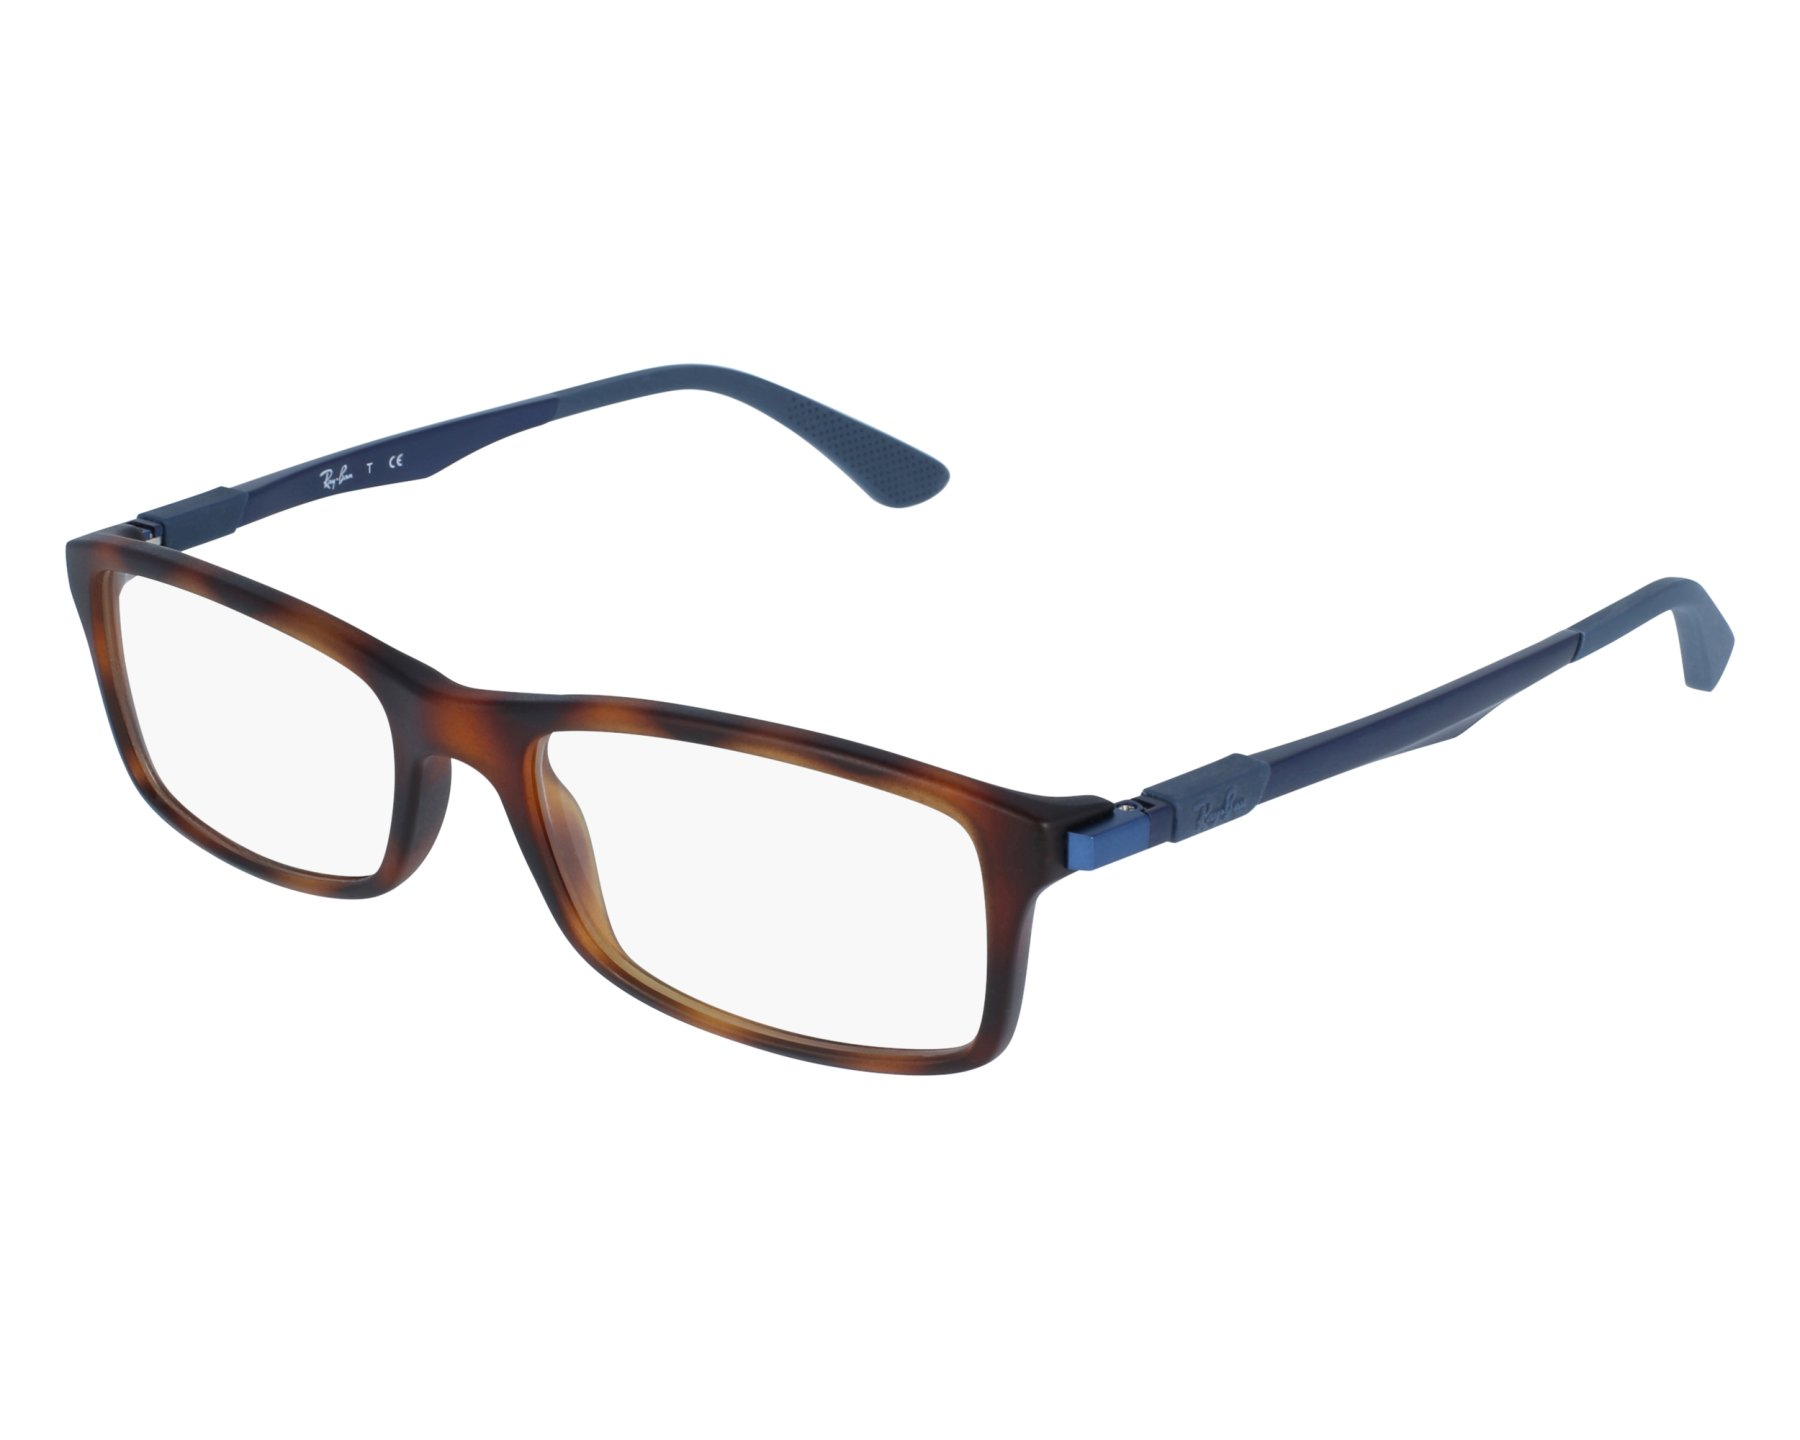 c8a70f9aa6 eyeglasses Ray-Ban RX-7017 5574 54-17 Havana Blue front view